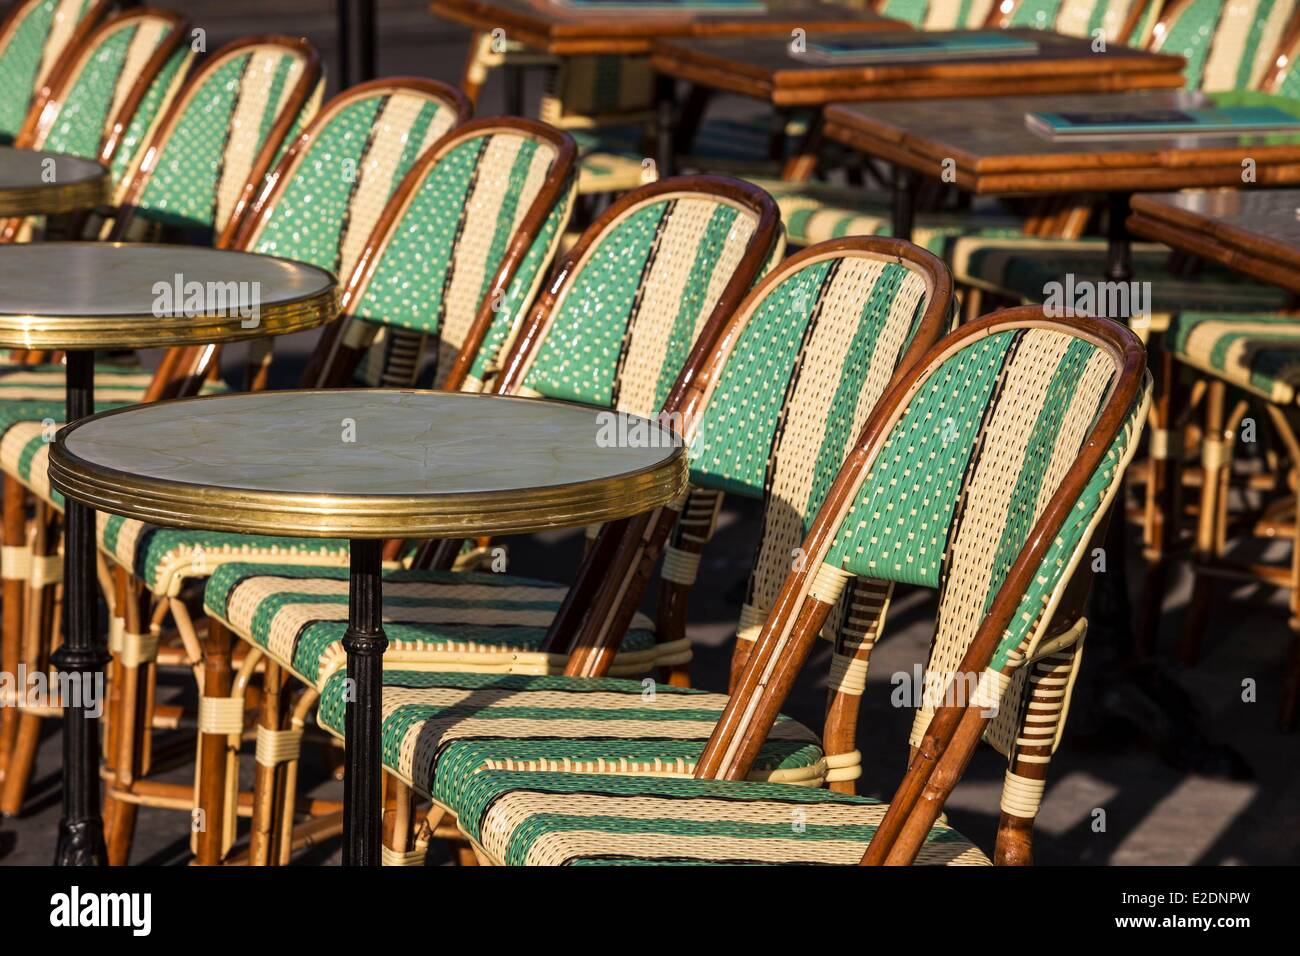 France Paris Bistro Chairs In A Cafe   Stock Image